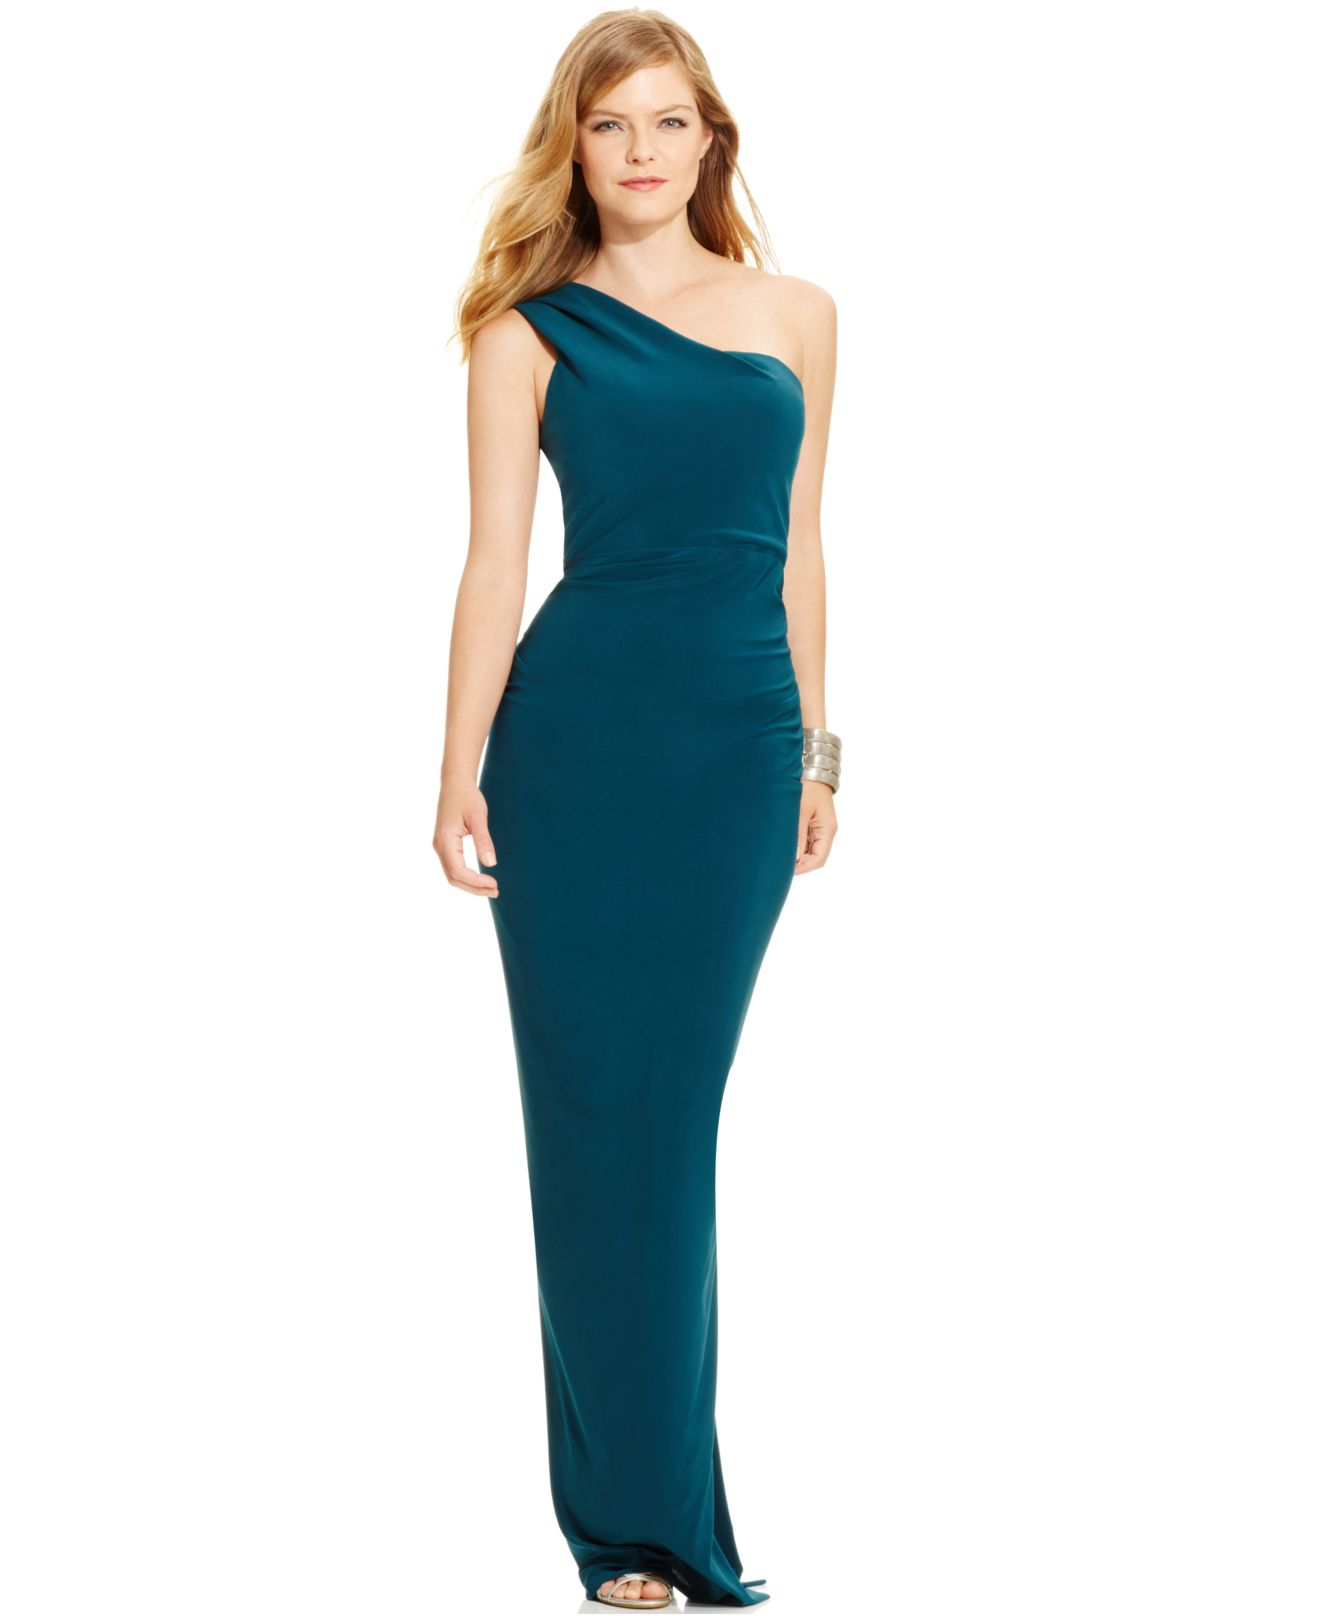 41434d36 Xscape Ruffle-back One-shoulder Gown in Blue - Lyst